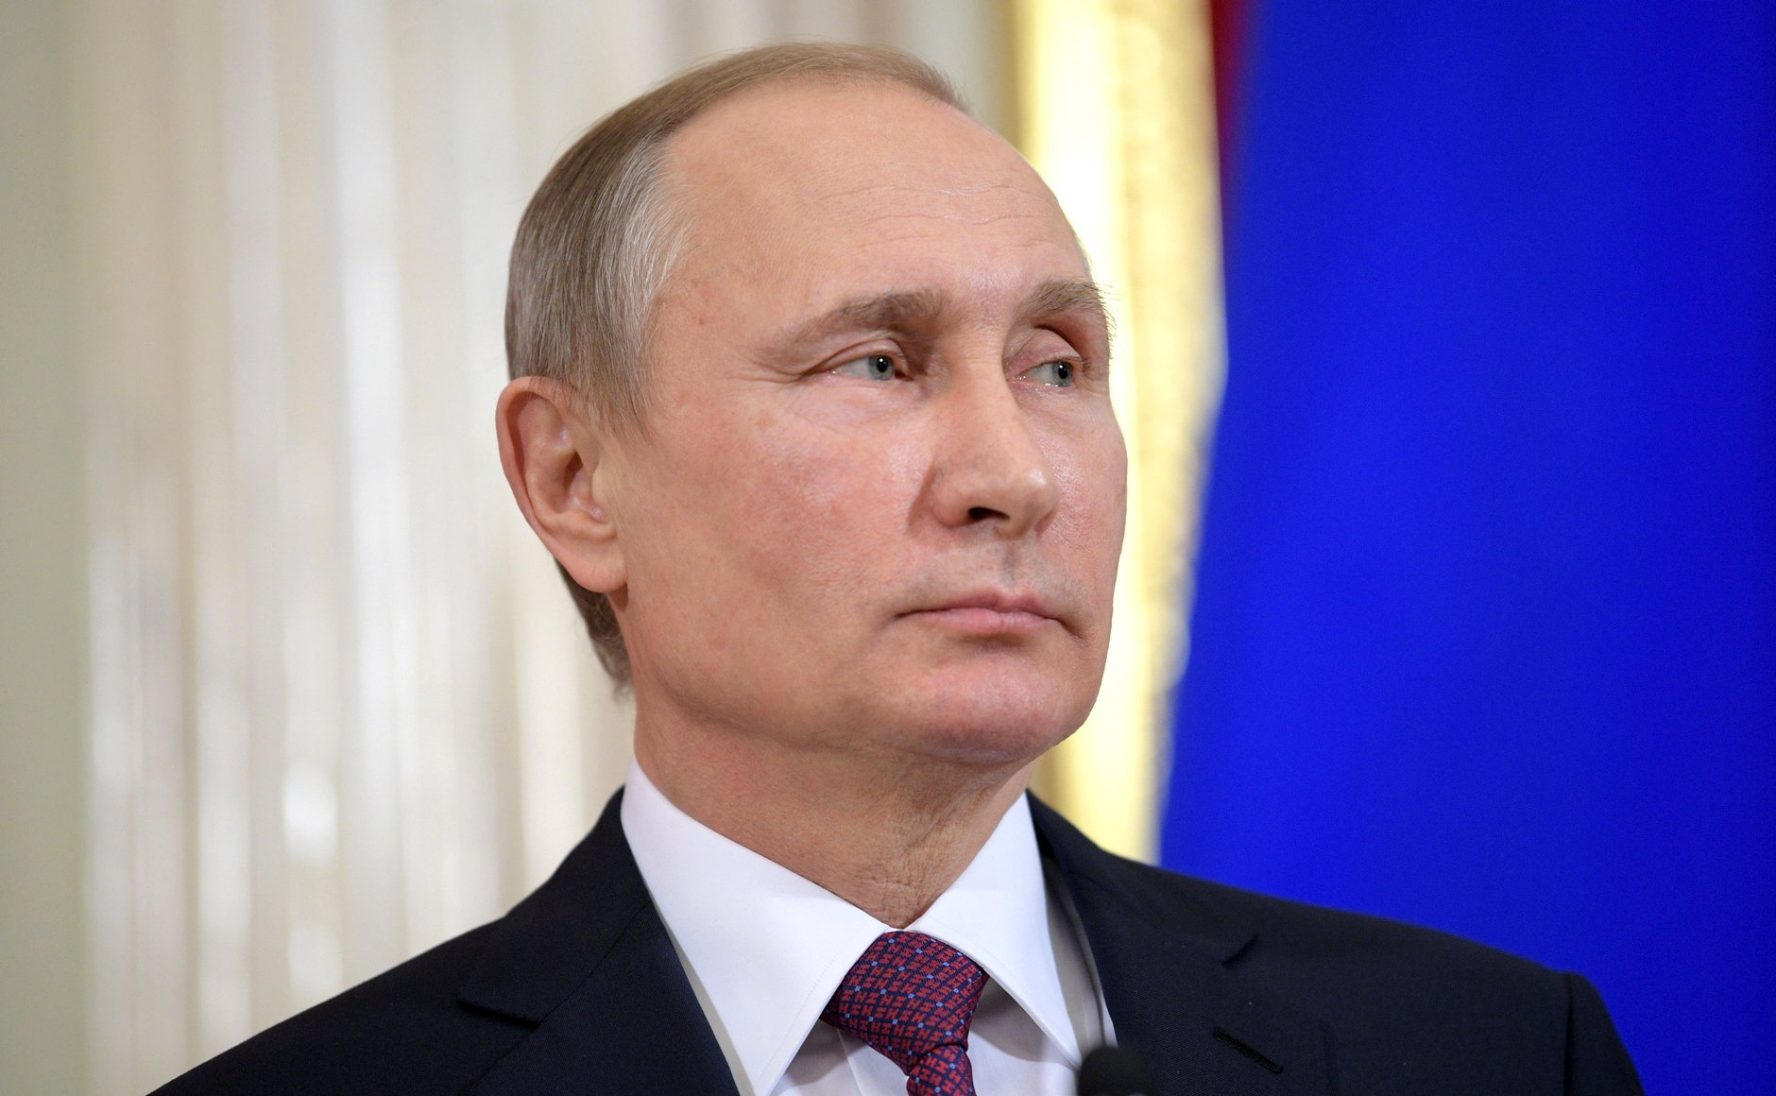 Vladimir Putin in 2017. Photo by the Russian Presidential Press and Information Office.